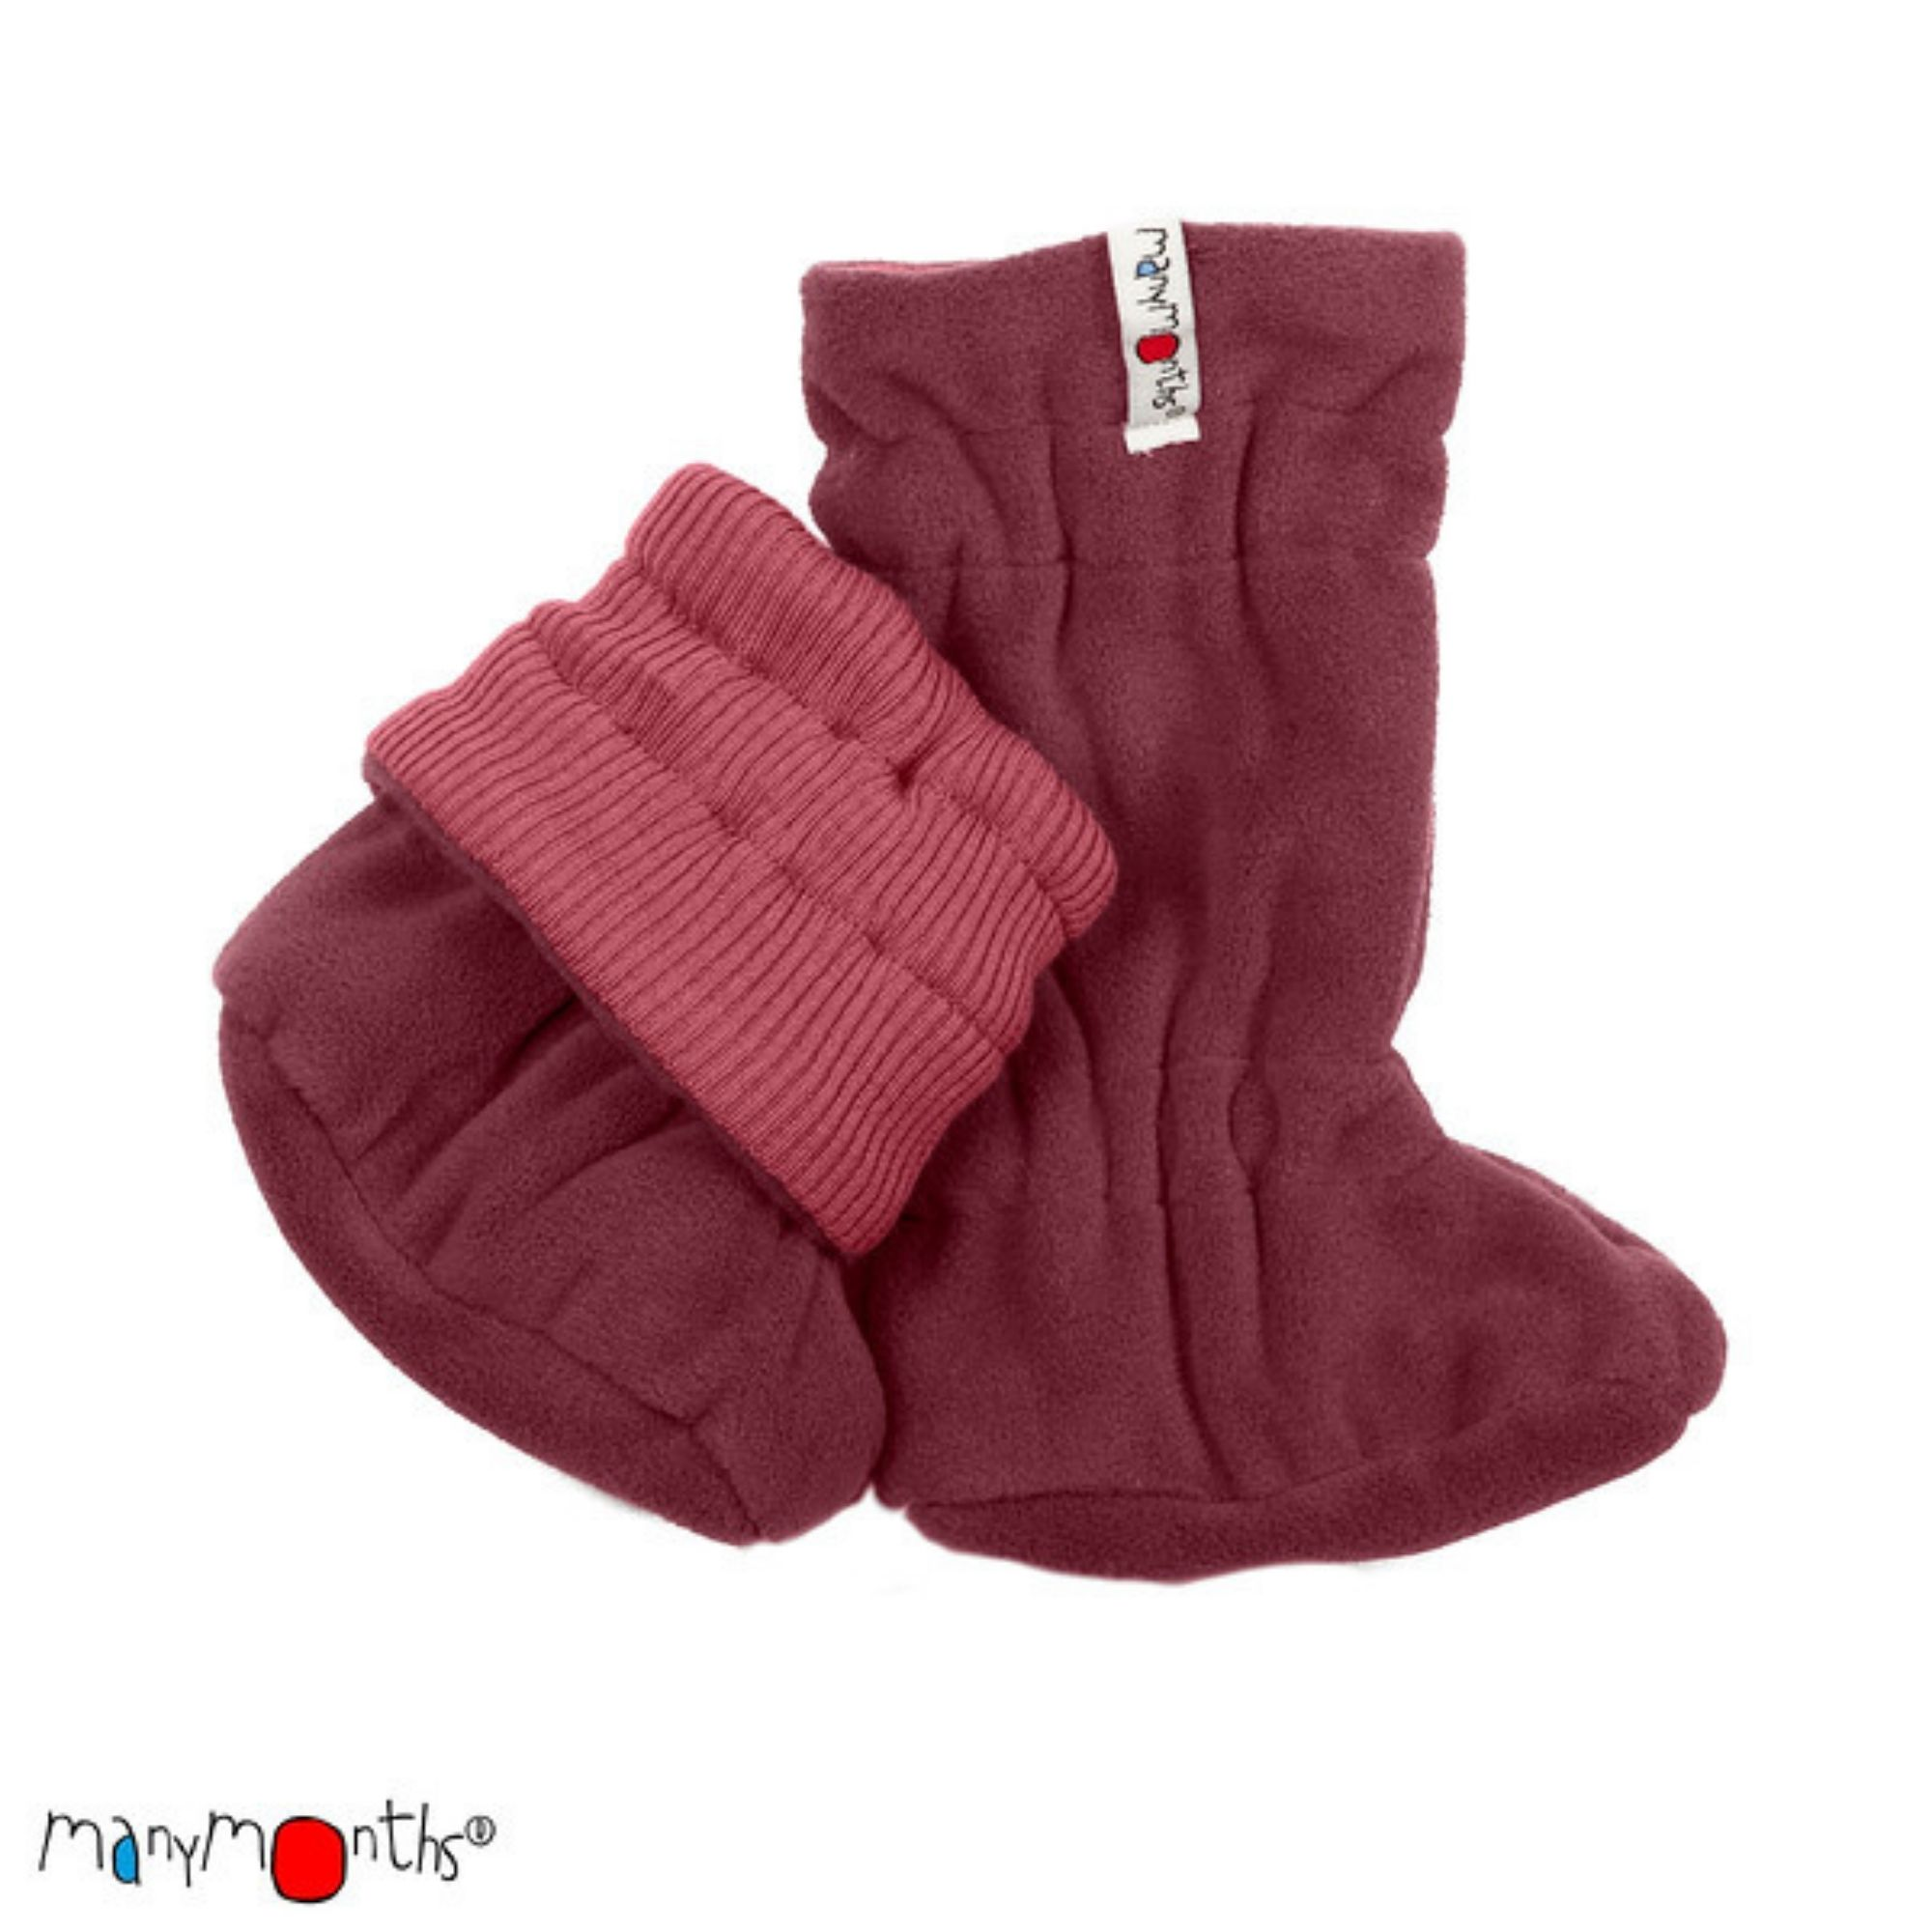 MANYMONTHS - Chaussons booties réversibles - Laine/Polaire